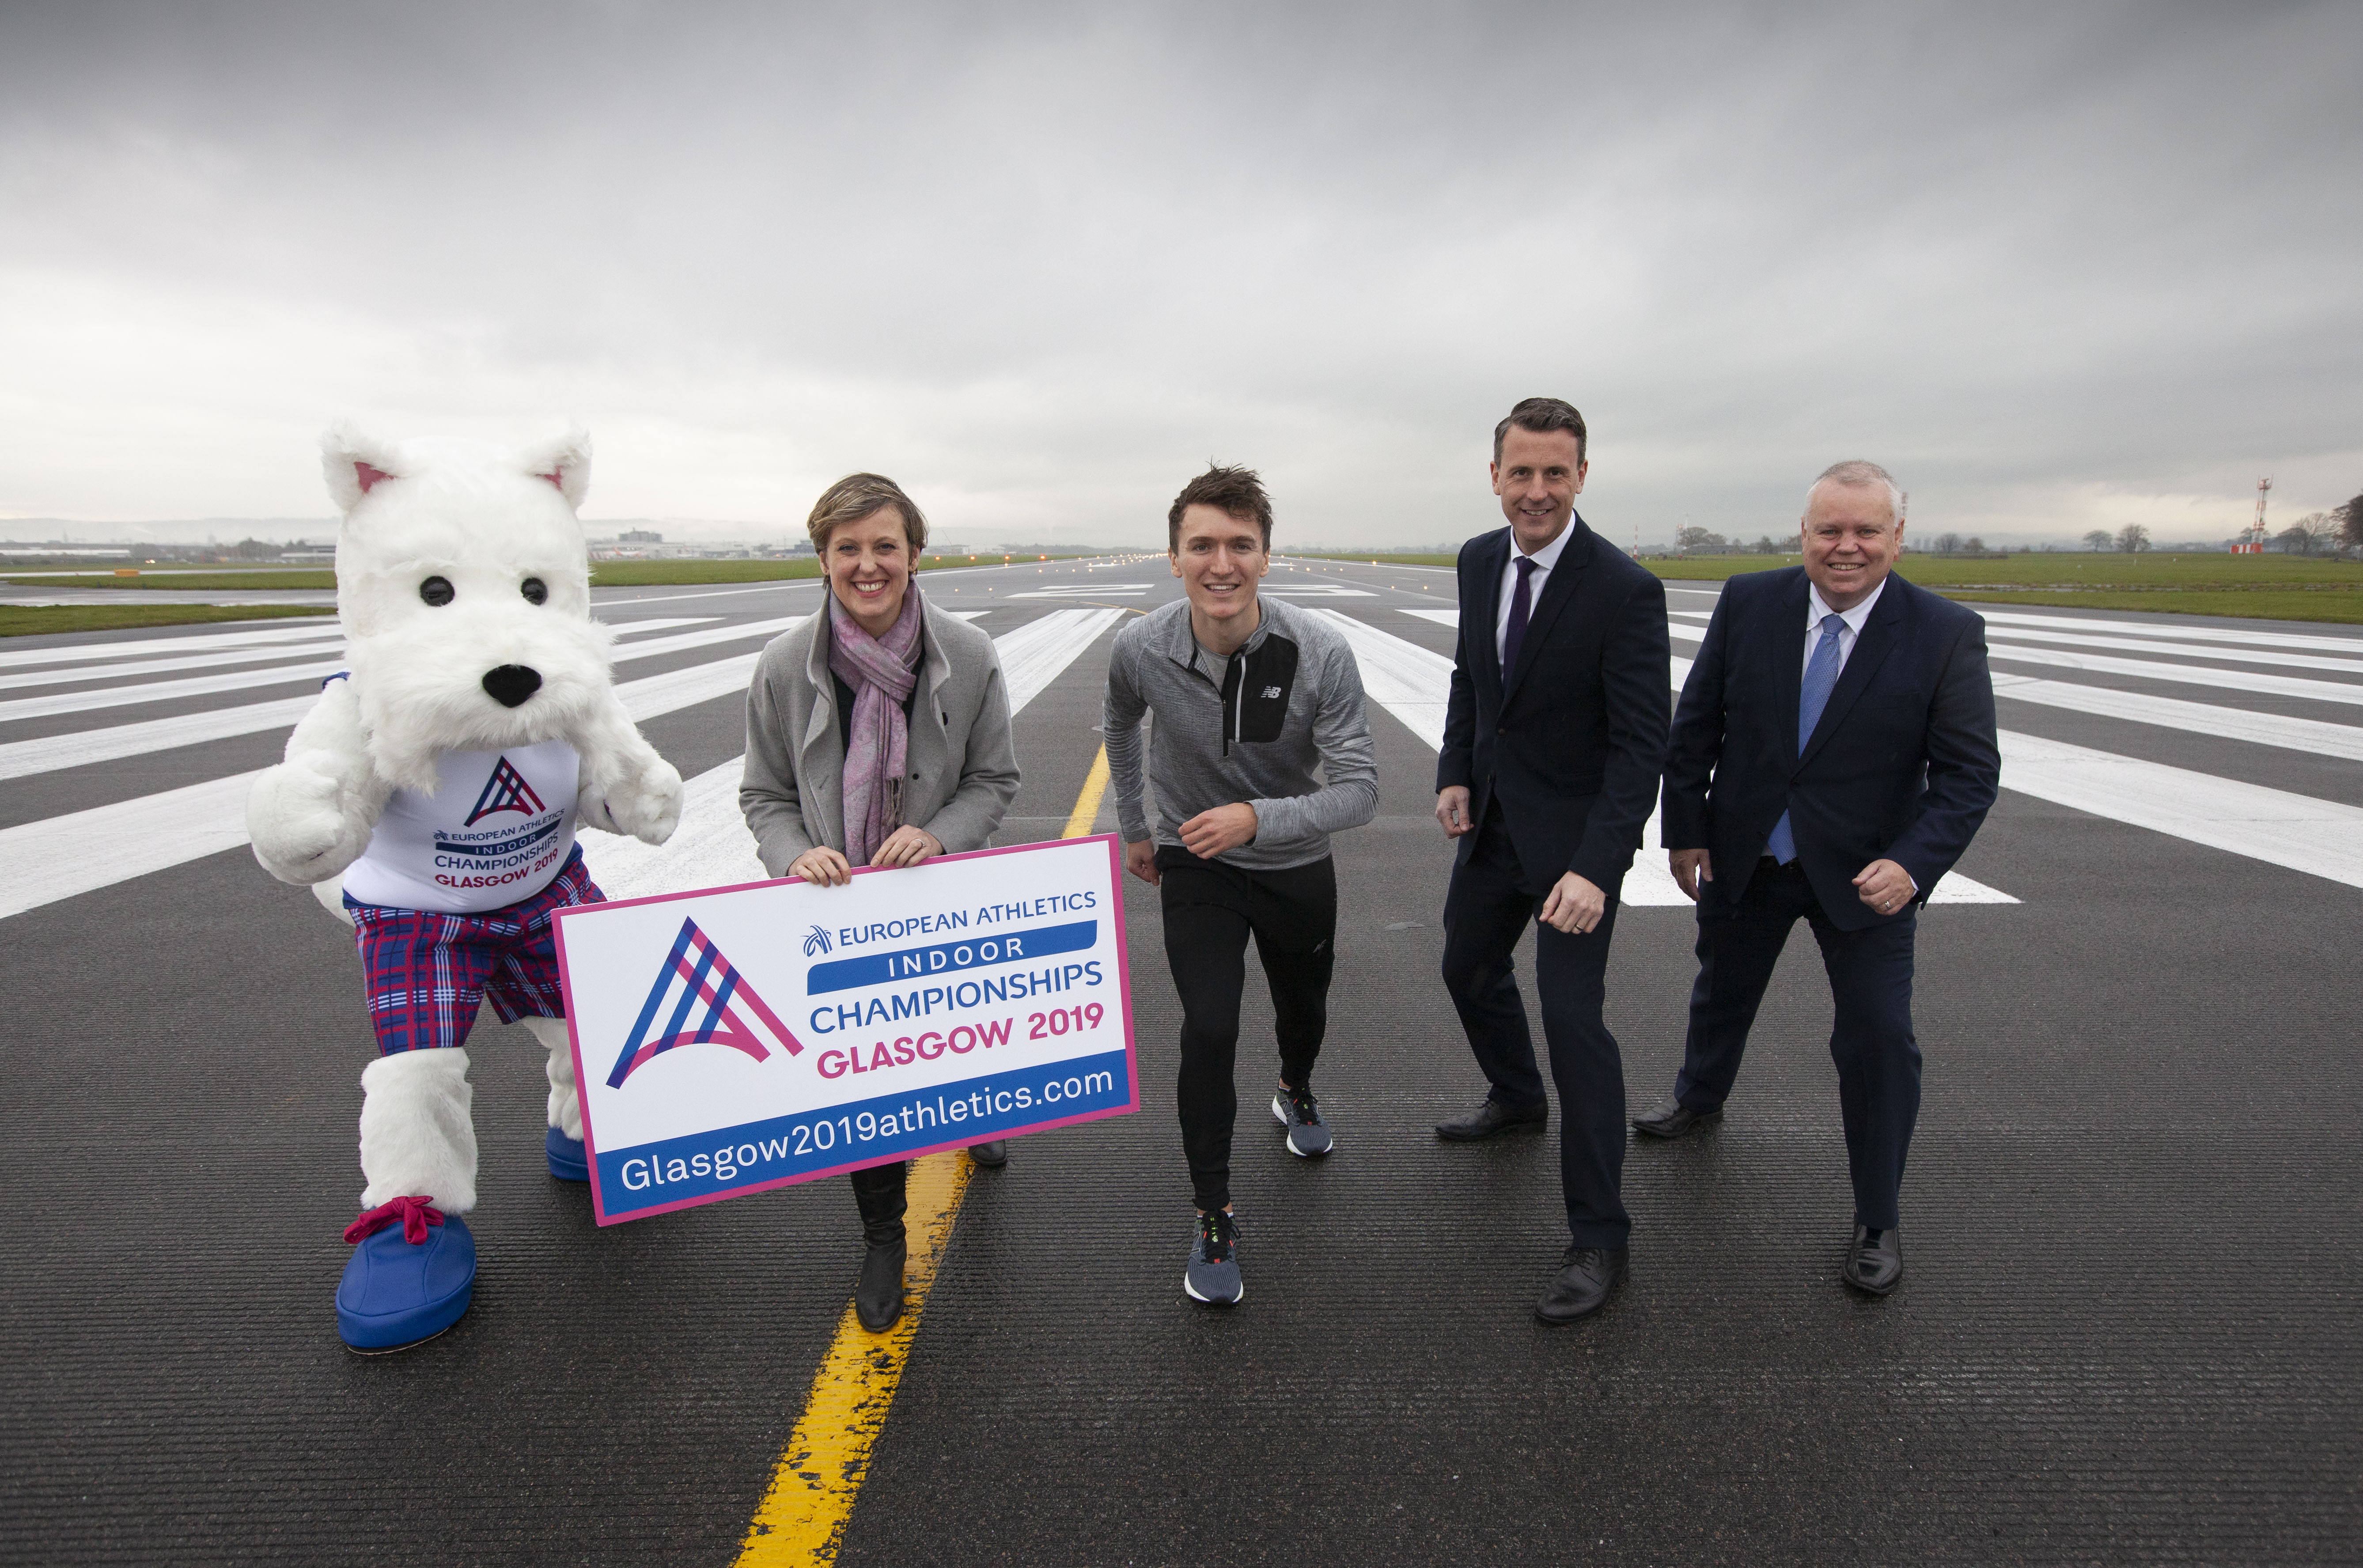 Glasgow International Airport lands partnership with European Athletics Indoor Championships Glasgow 2019